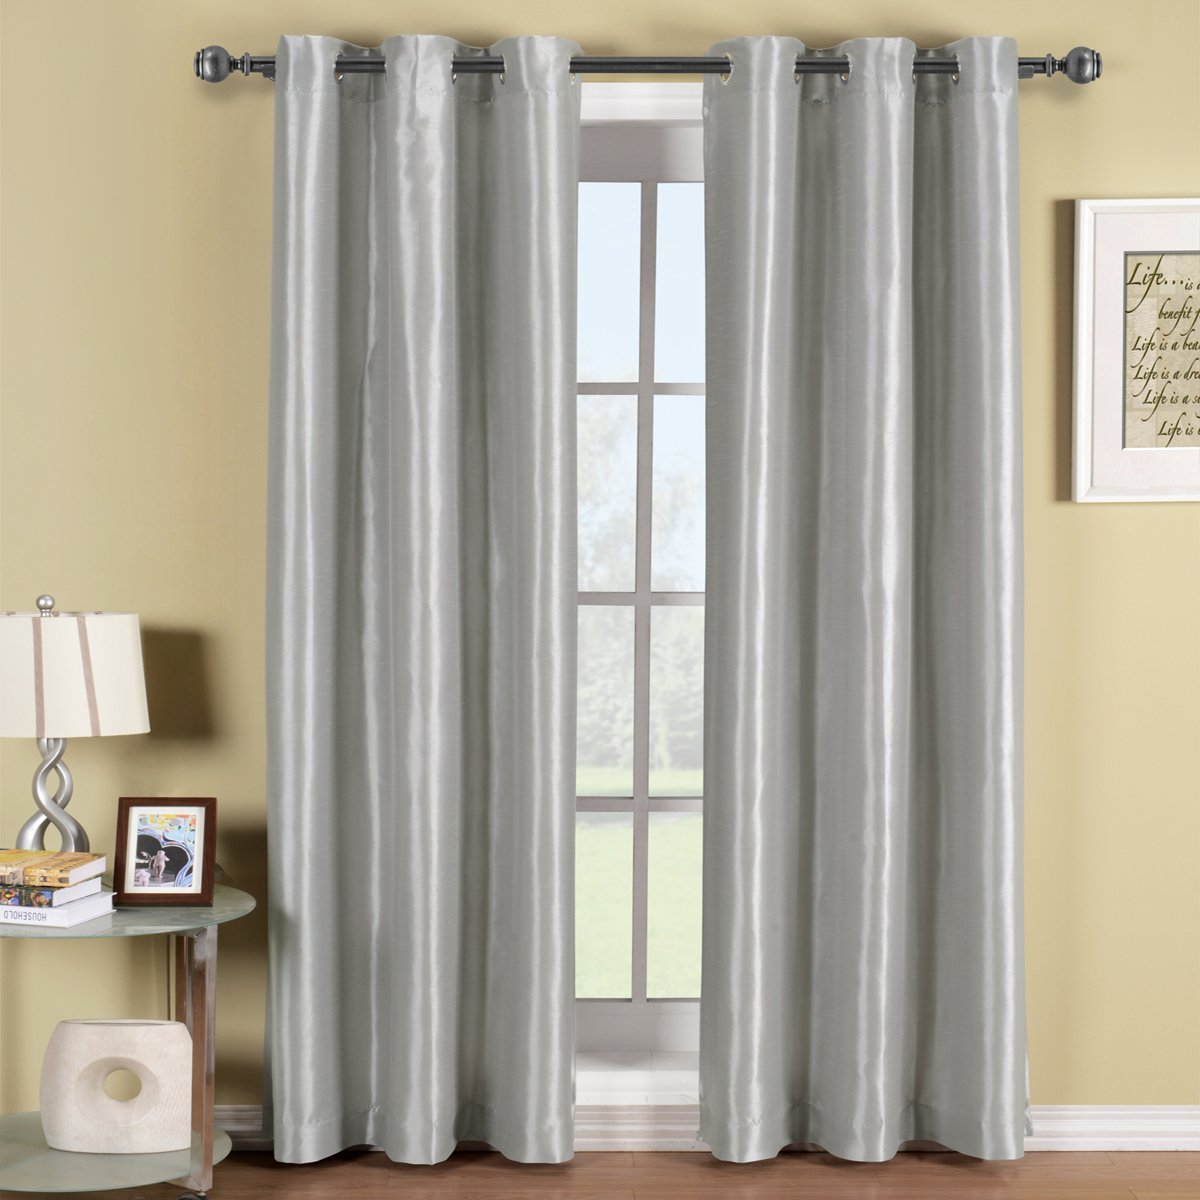 silver curtains amazon.com: soho gray-silver grommet blackout window curtain drape, solid  pattern, 42x84 inches, KPAFJWN